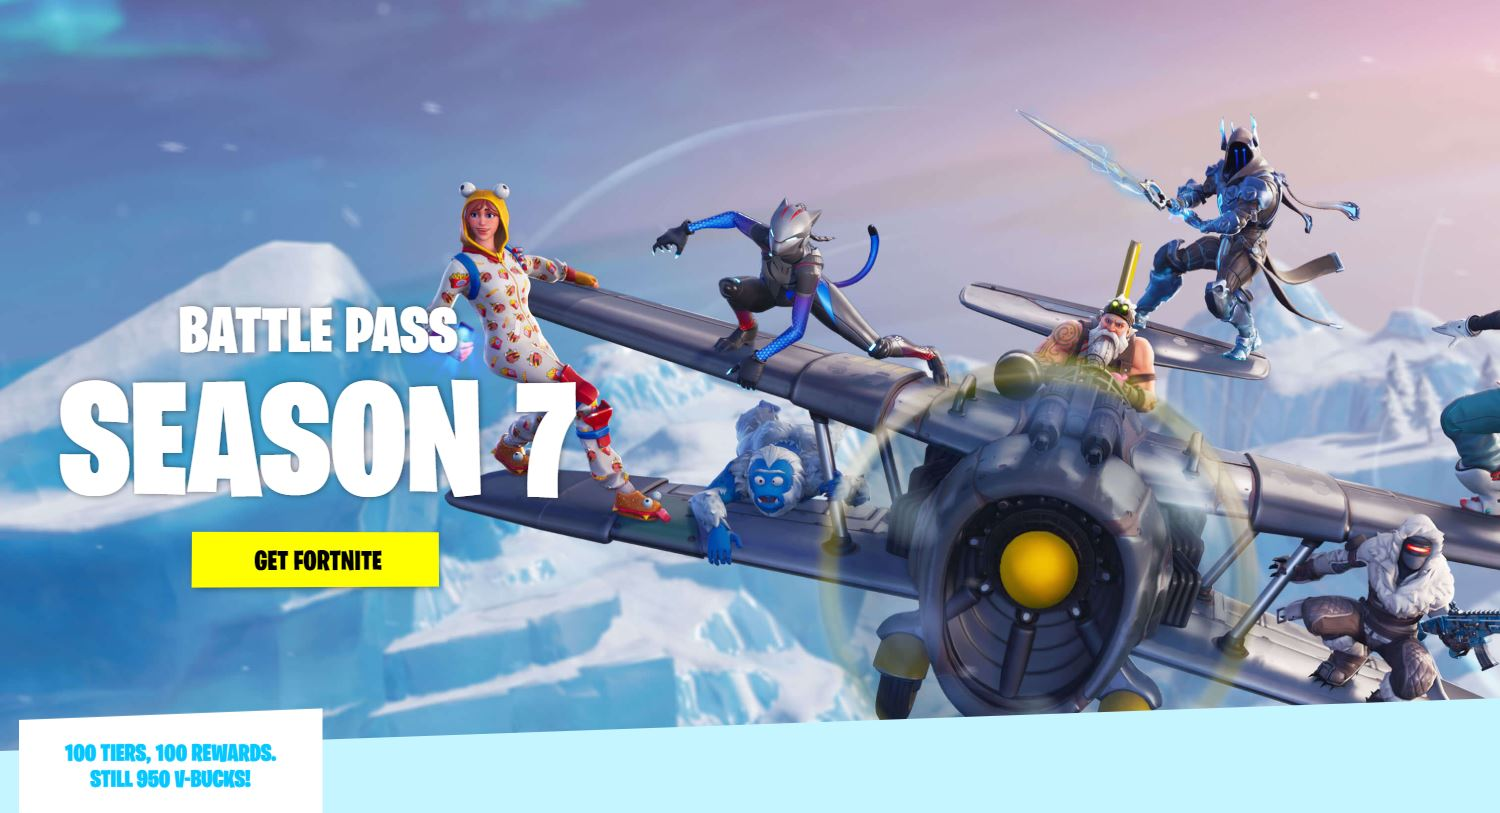 All Known Issues in Season 7 for Fortnite Battle Royale